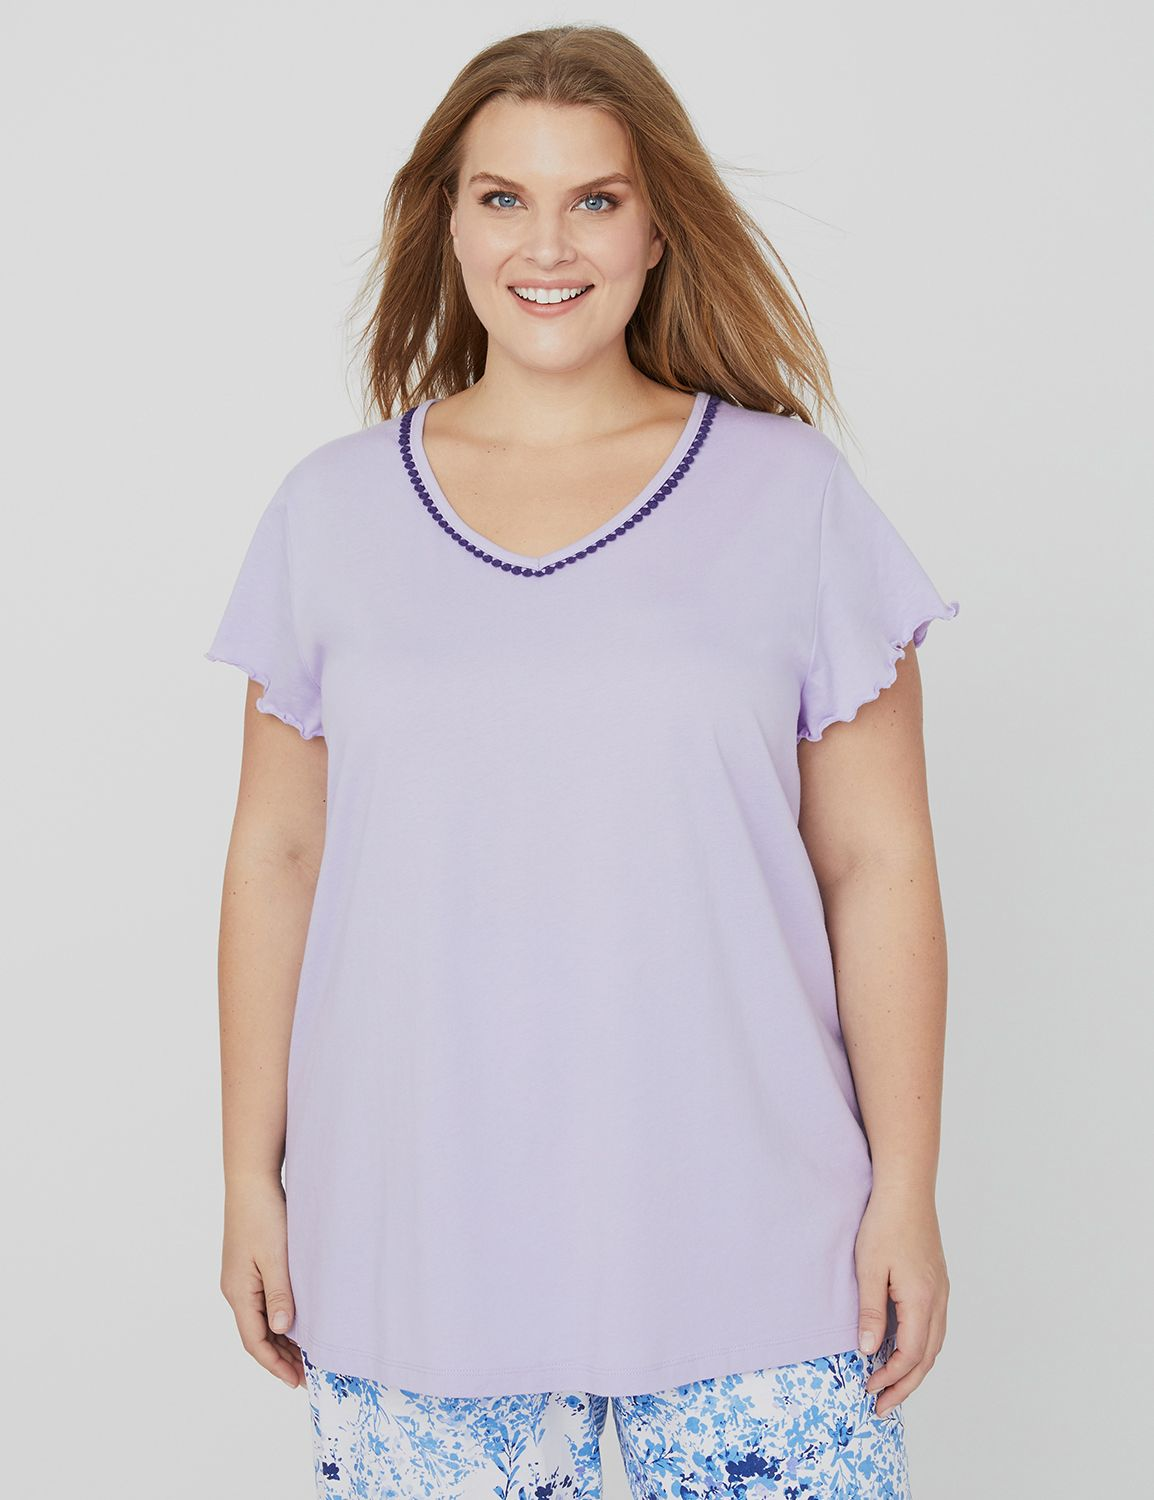 All The Details Sleep Tee 1088483- Ruffle Sleeve Tee w/ pom p MP-300096229